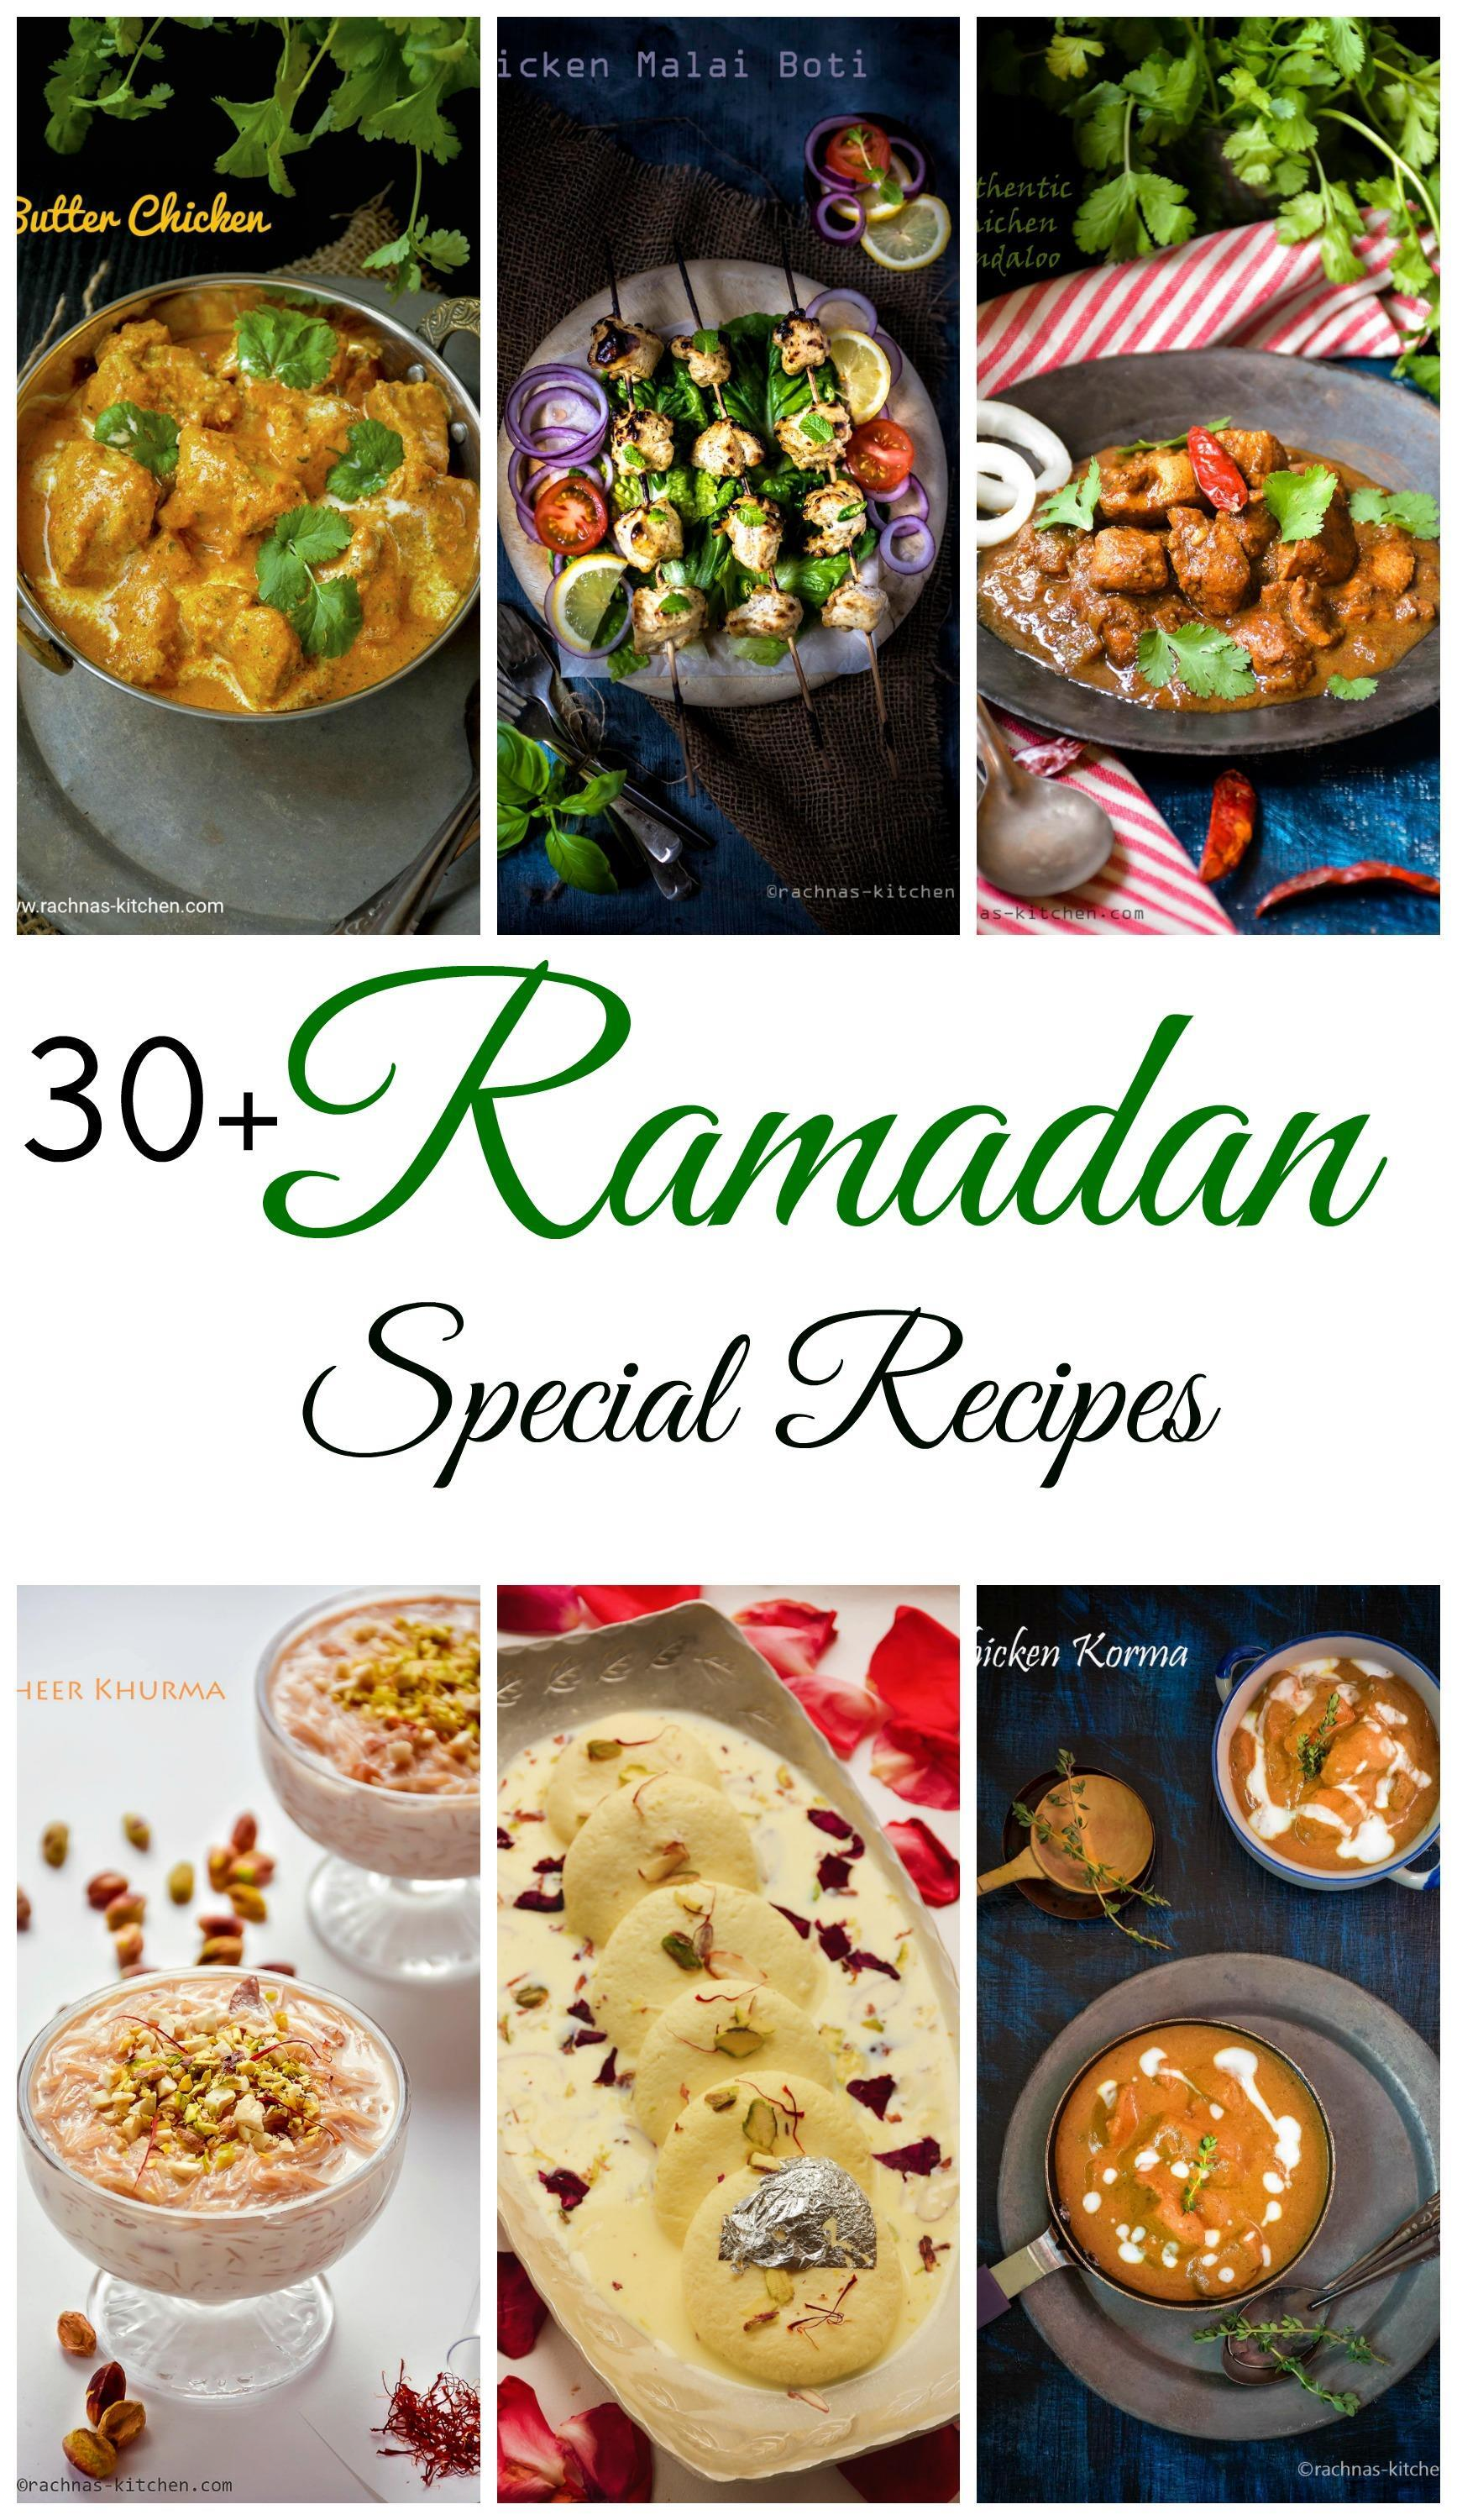 Iftar Recipes, Ramadan Special Recipes | Iftar Menu